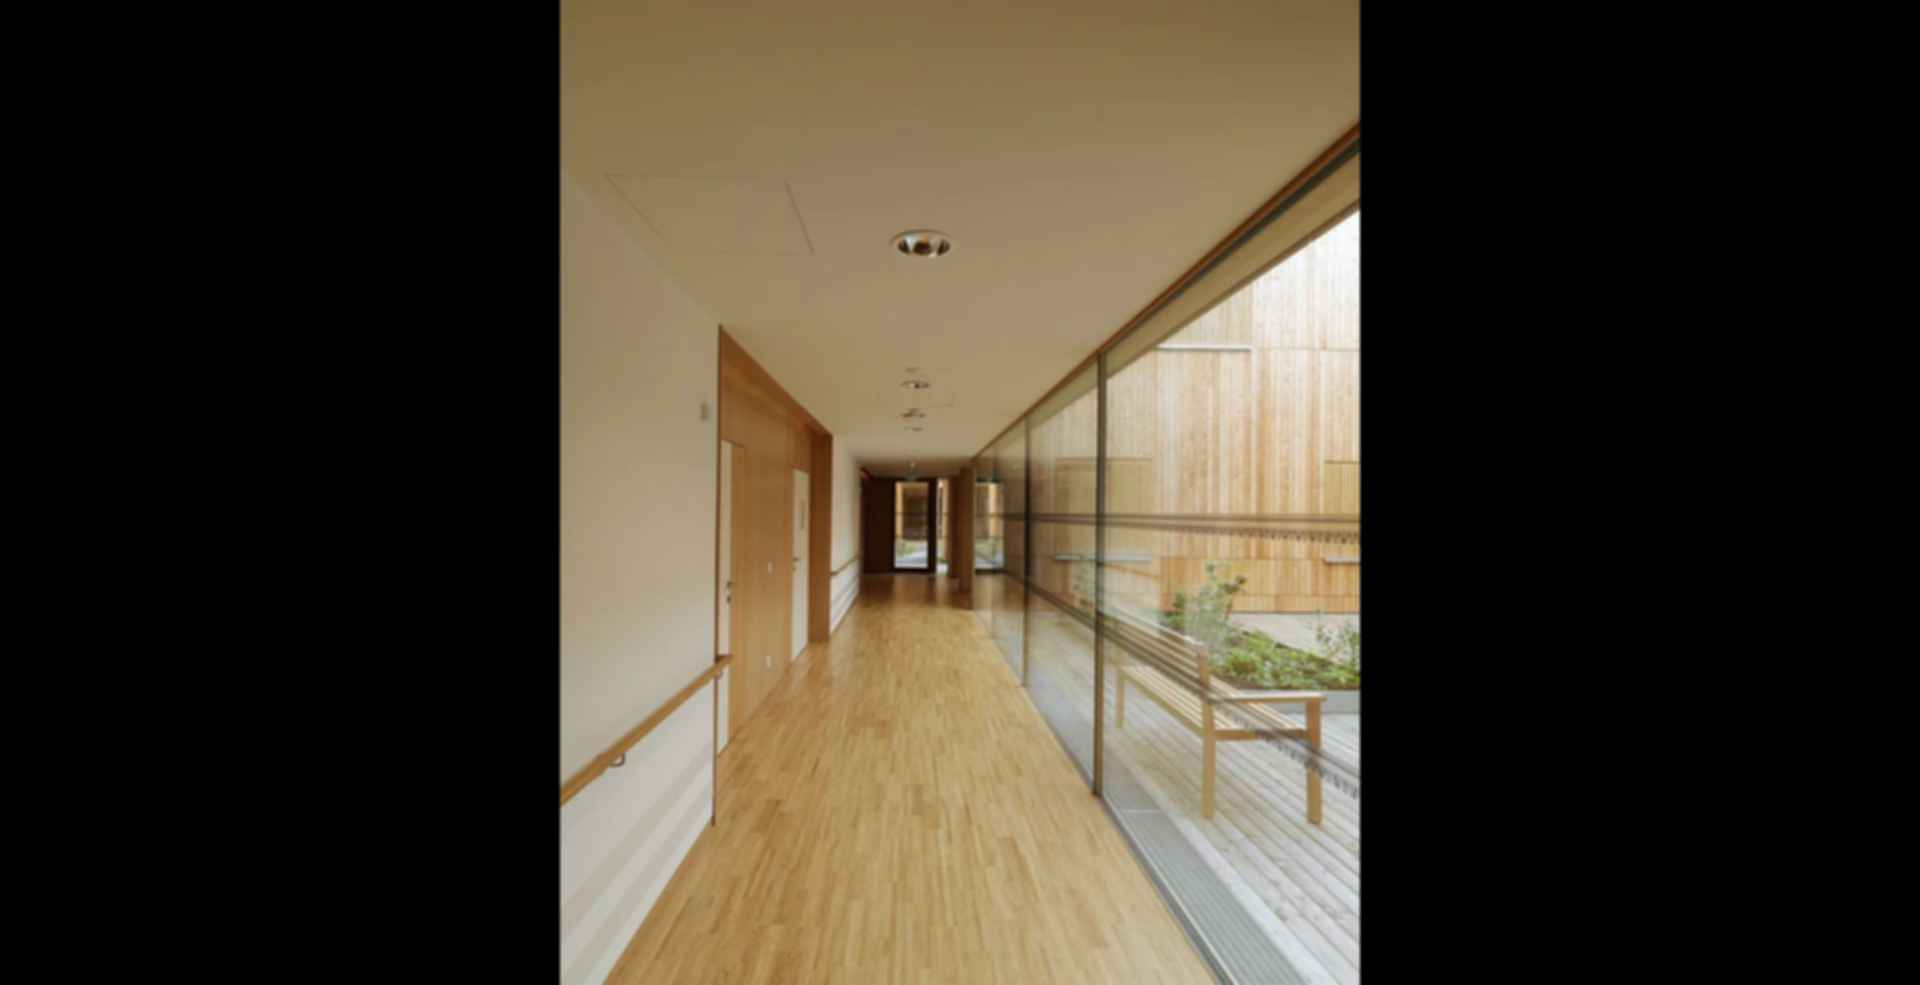 Residential Care Home Andritz - interior/hallway